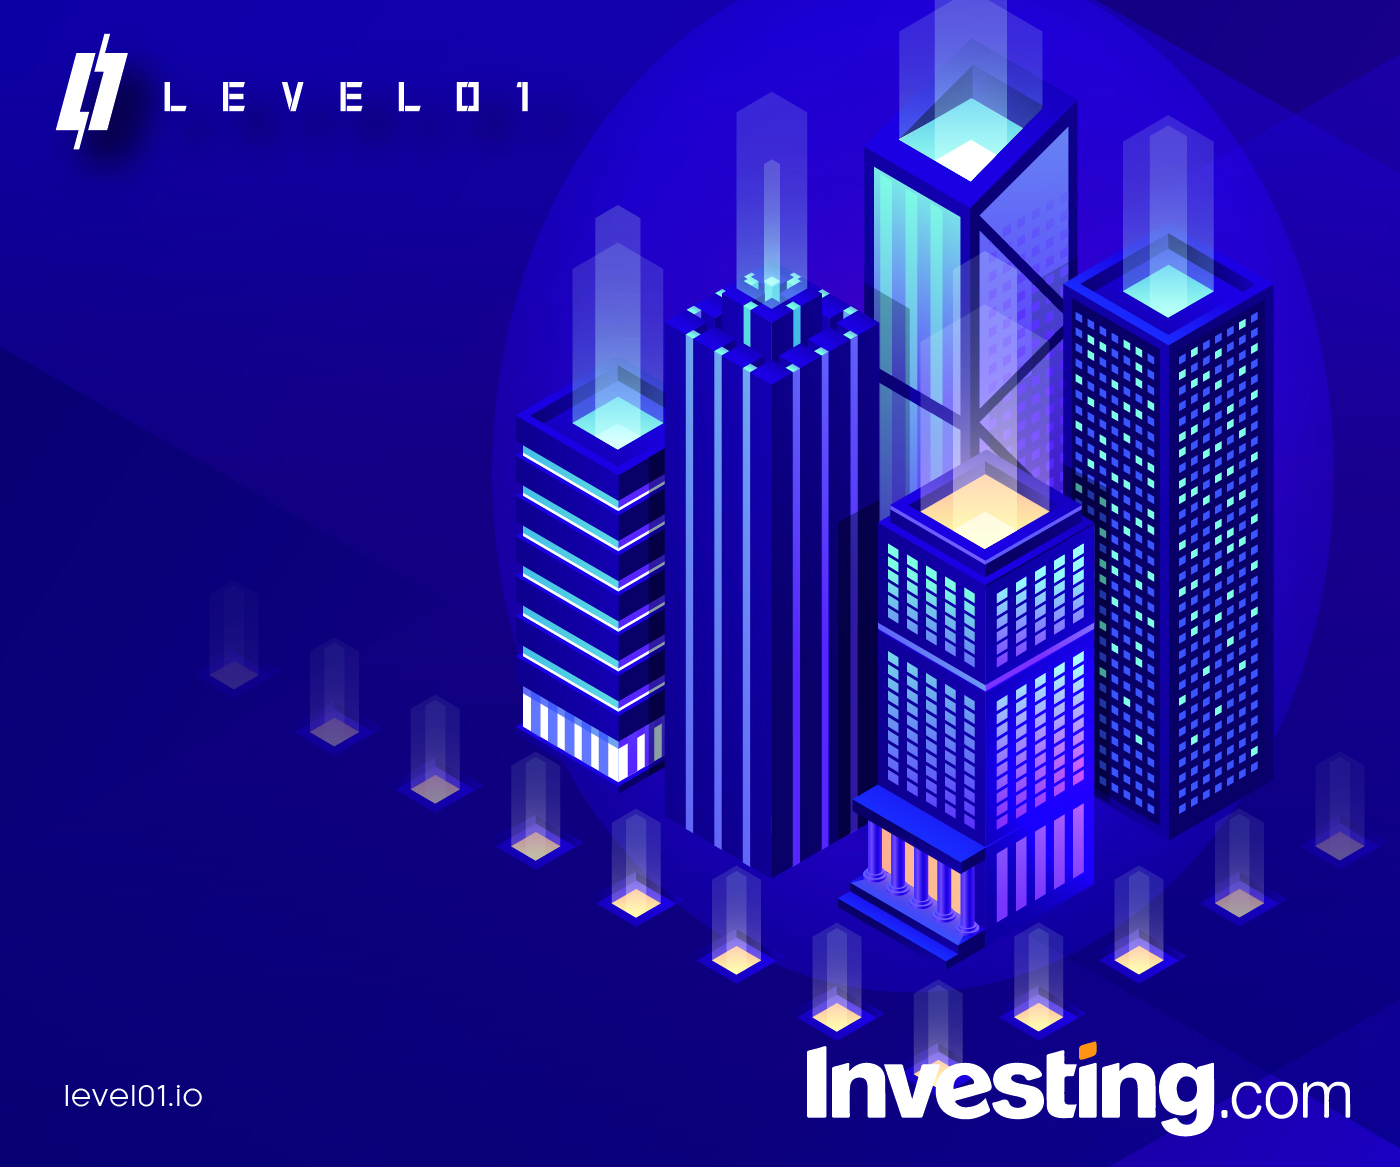 City skyline for DeFi and investing.com with Level01